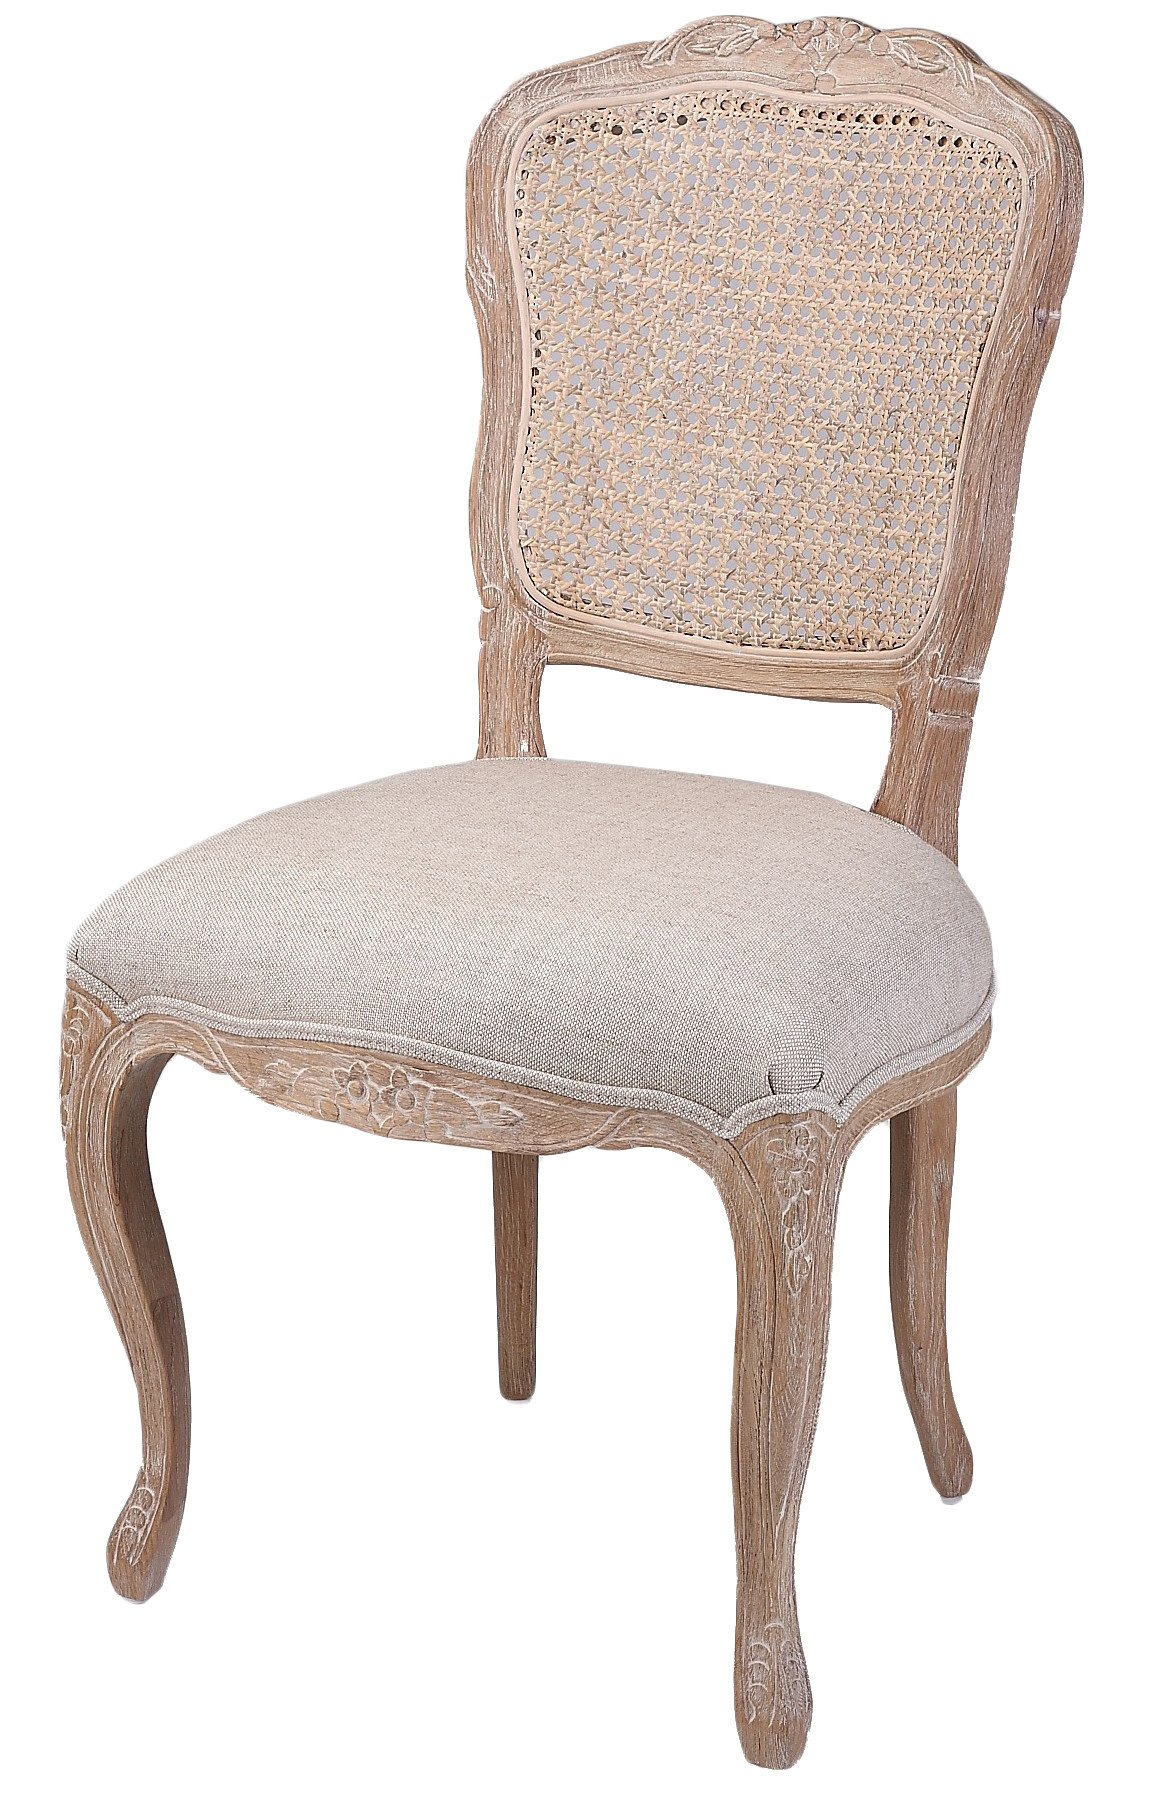 New French Country Linen Dining Chair With Rattan Back